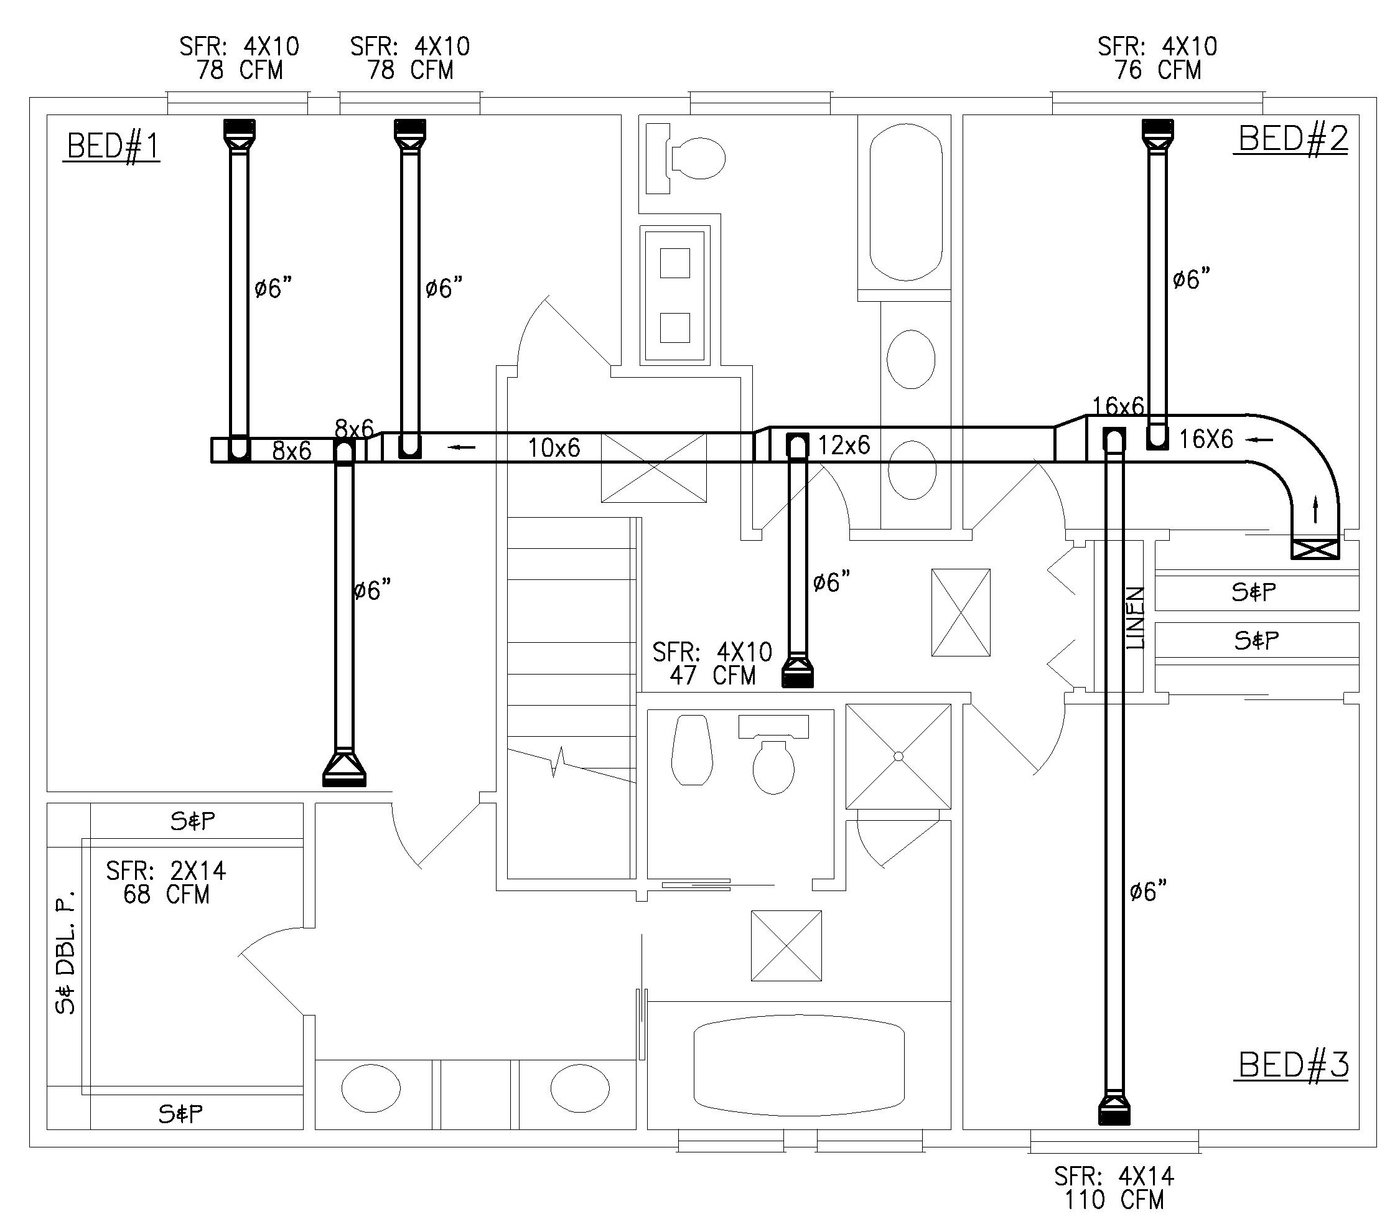 Hvac Plans By Raymond Alberga At Drawings Pictures